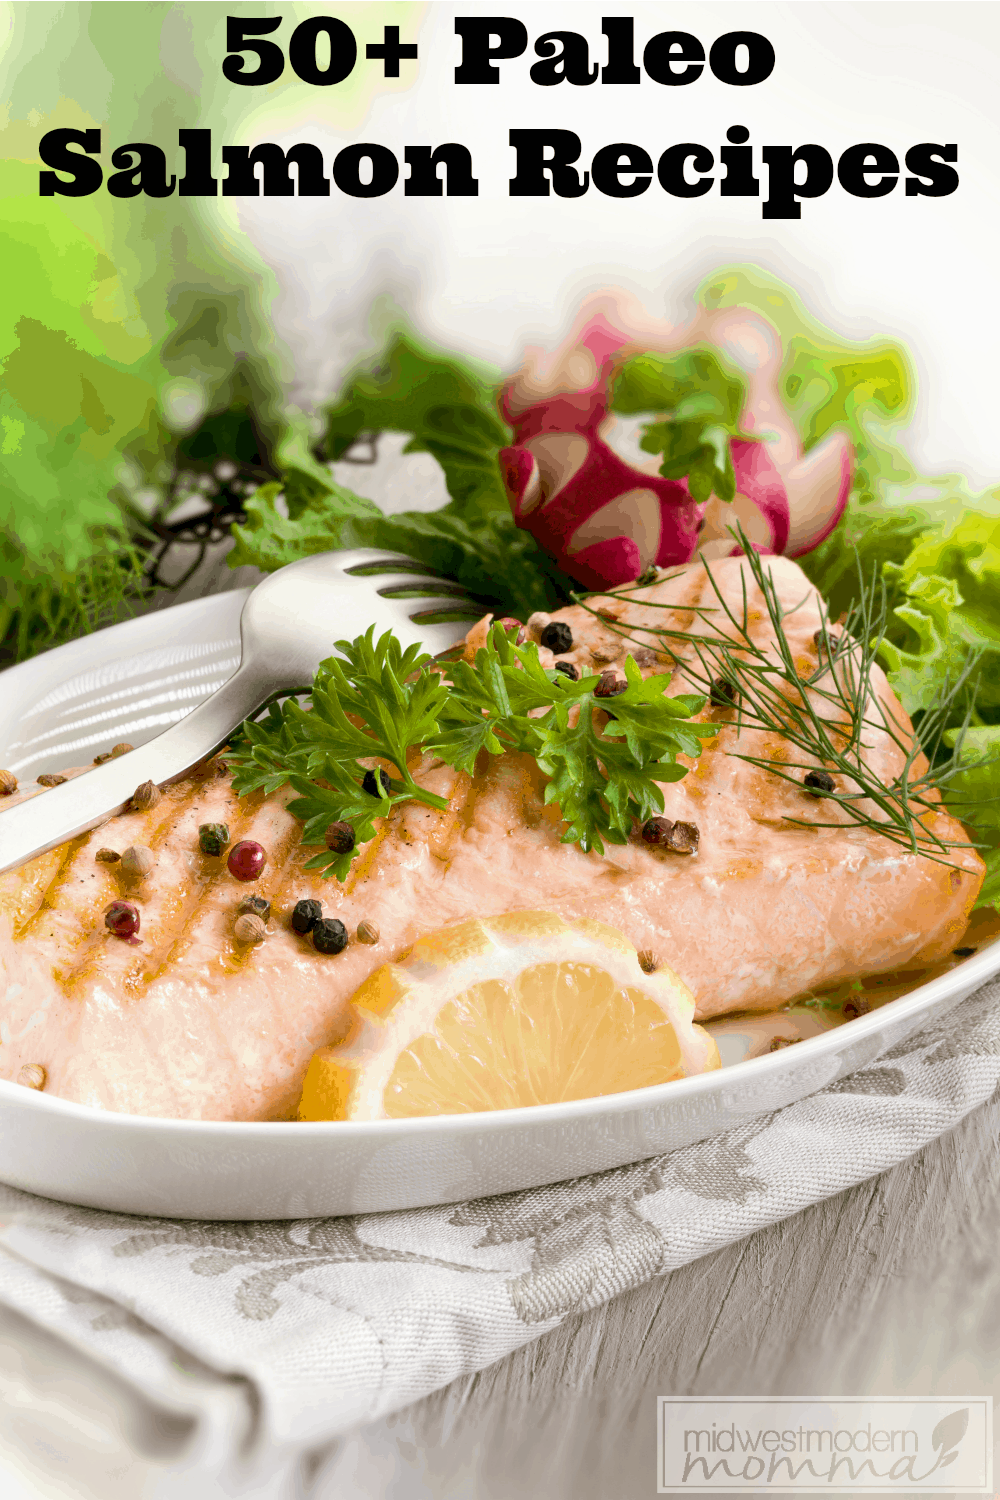 These Paleo Salmon Recipes will make your menu plan easy to manage! With tons of great options, these are some of our favorite Paleo meals!